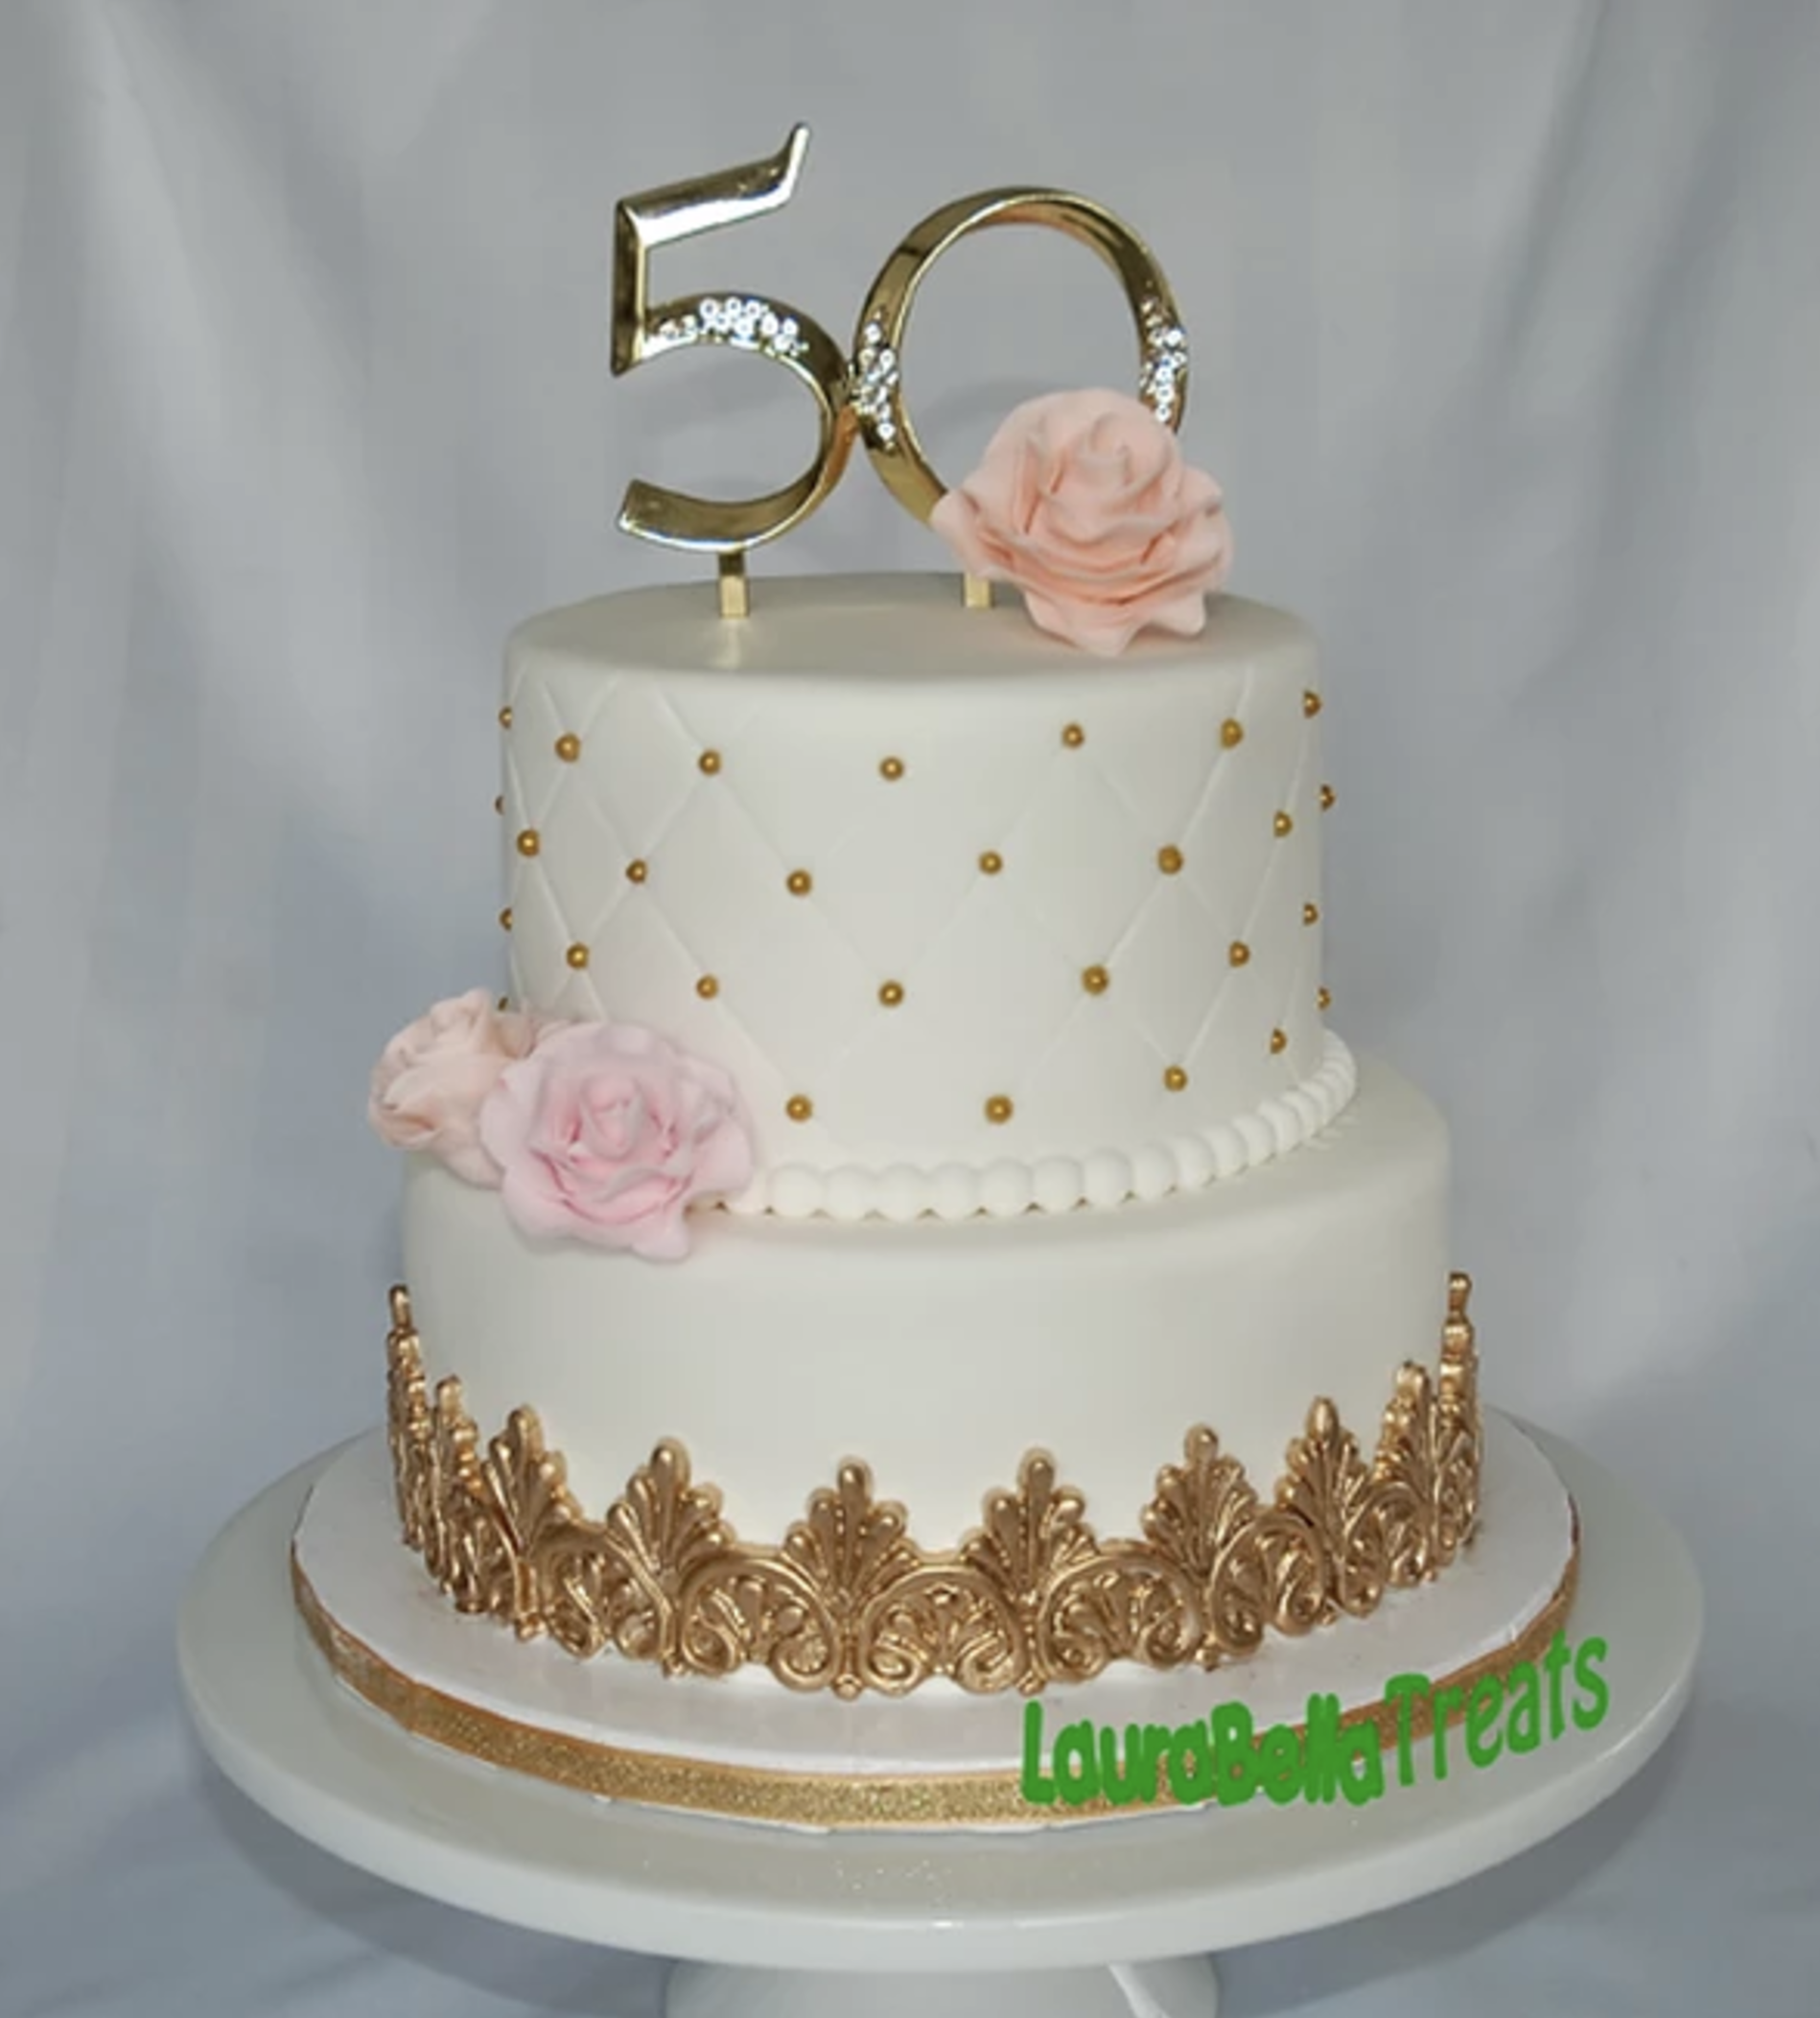 50th Birthday Cake.png